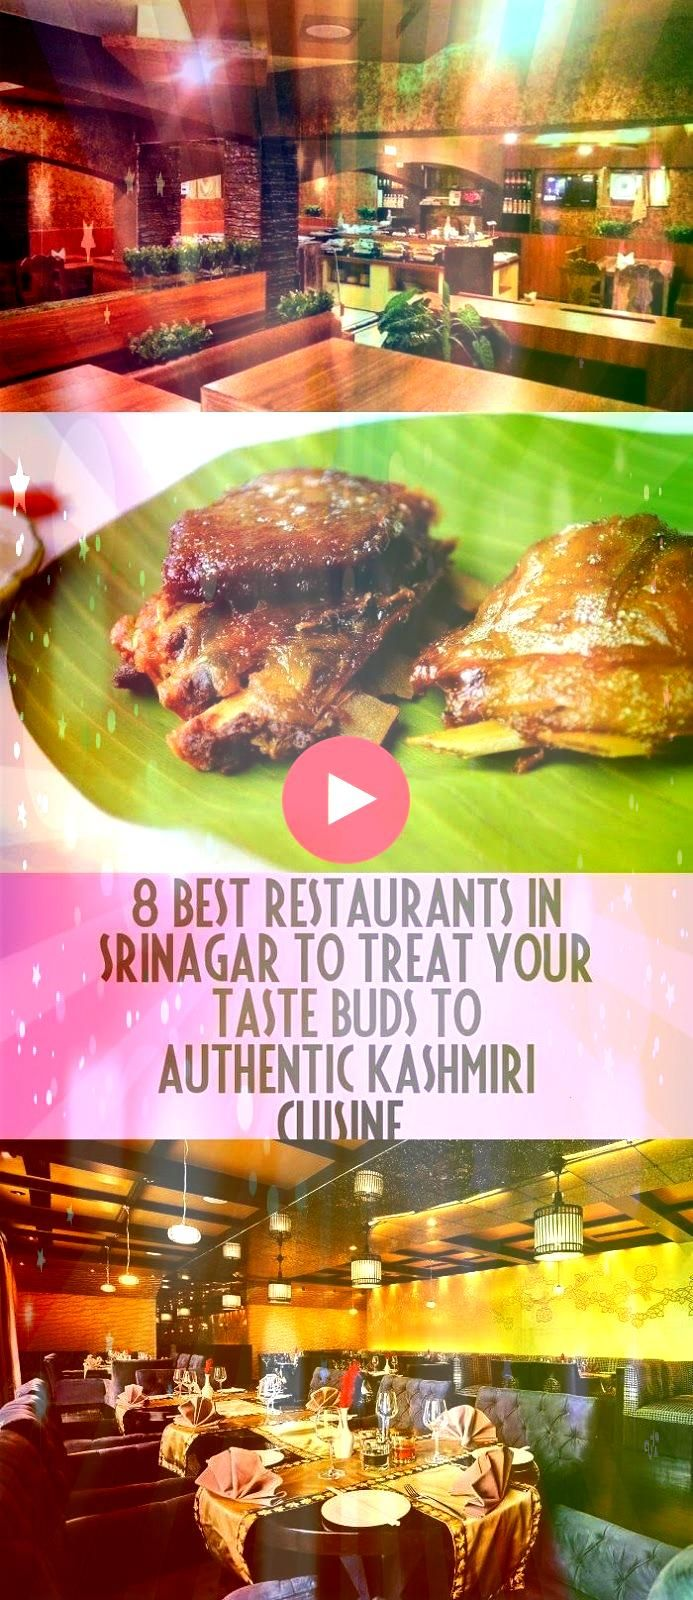 Finest Eating places In Srinagar To Deal with Your Style Buds To Genuine Kashmiri Delicacies Eight Finest Eating places In Srinagar To Deal with Your Style Buds To Genuin...